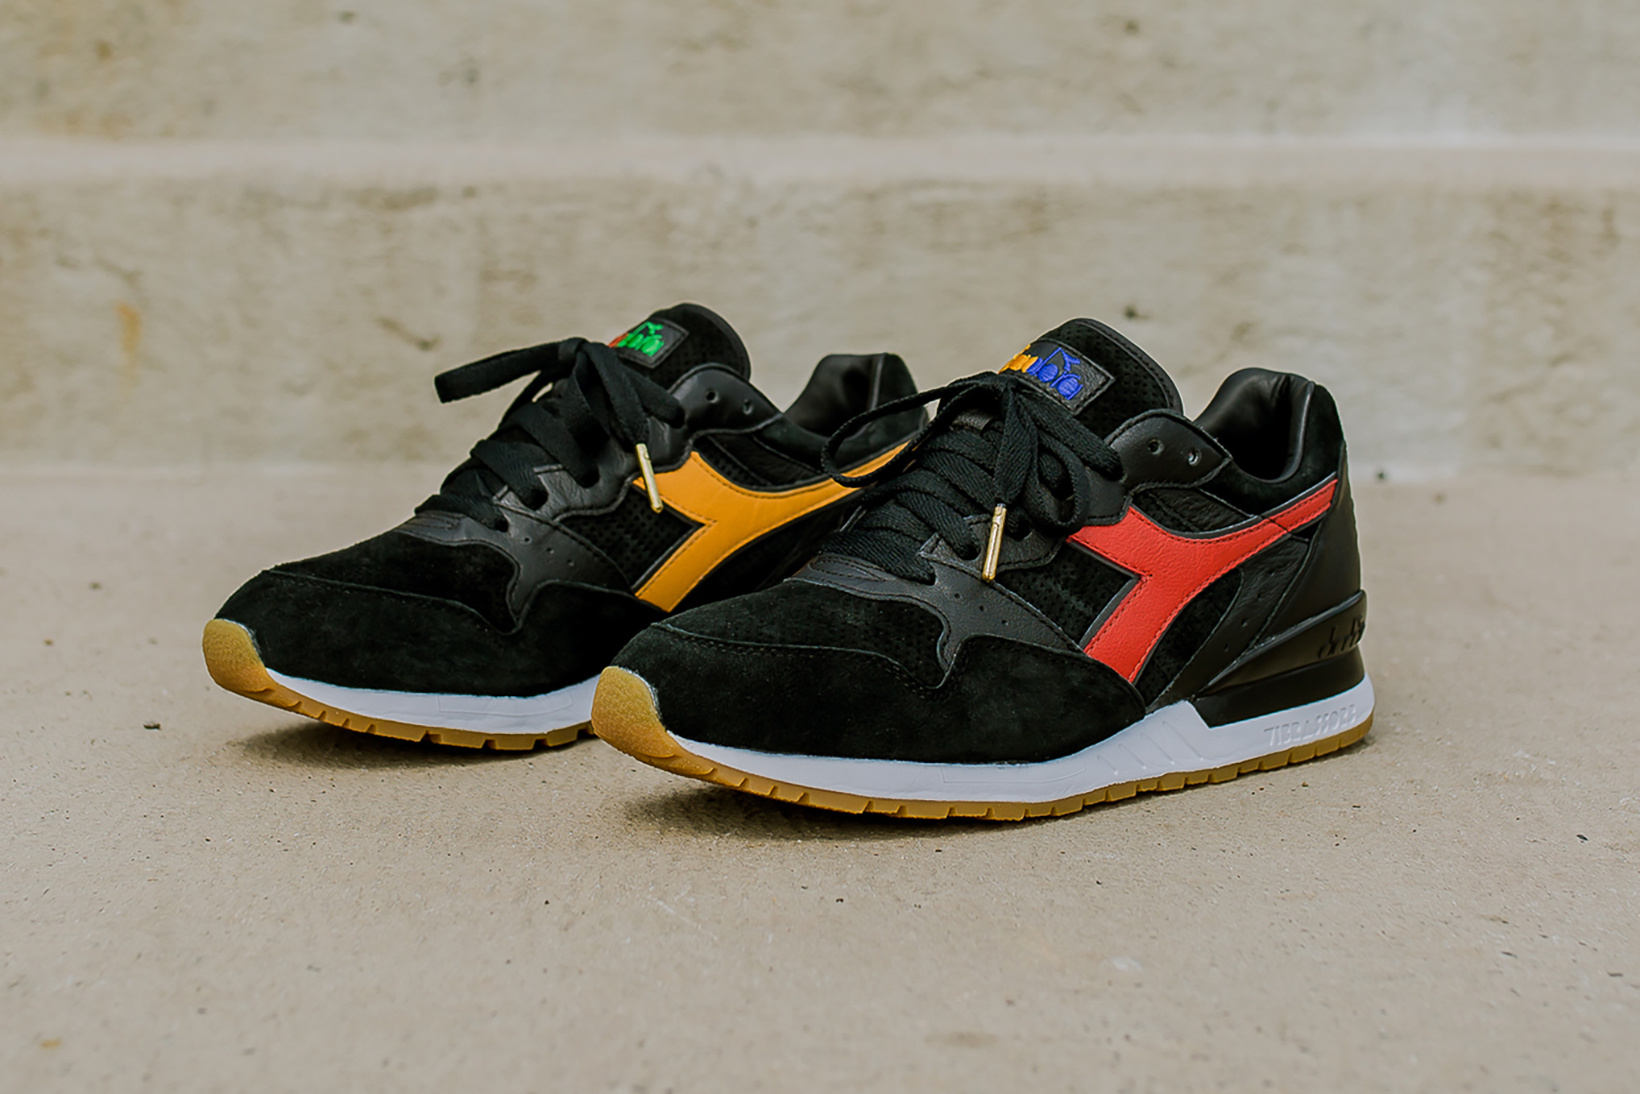 diadora-intrepid-packer-shoes-from-seoul-to-rio-06